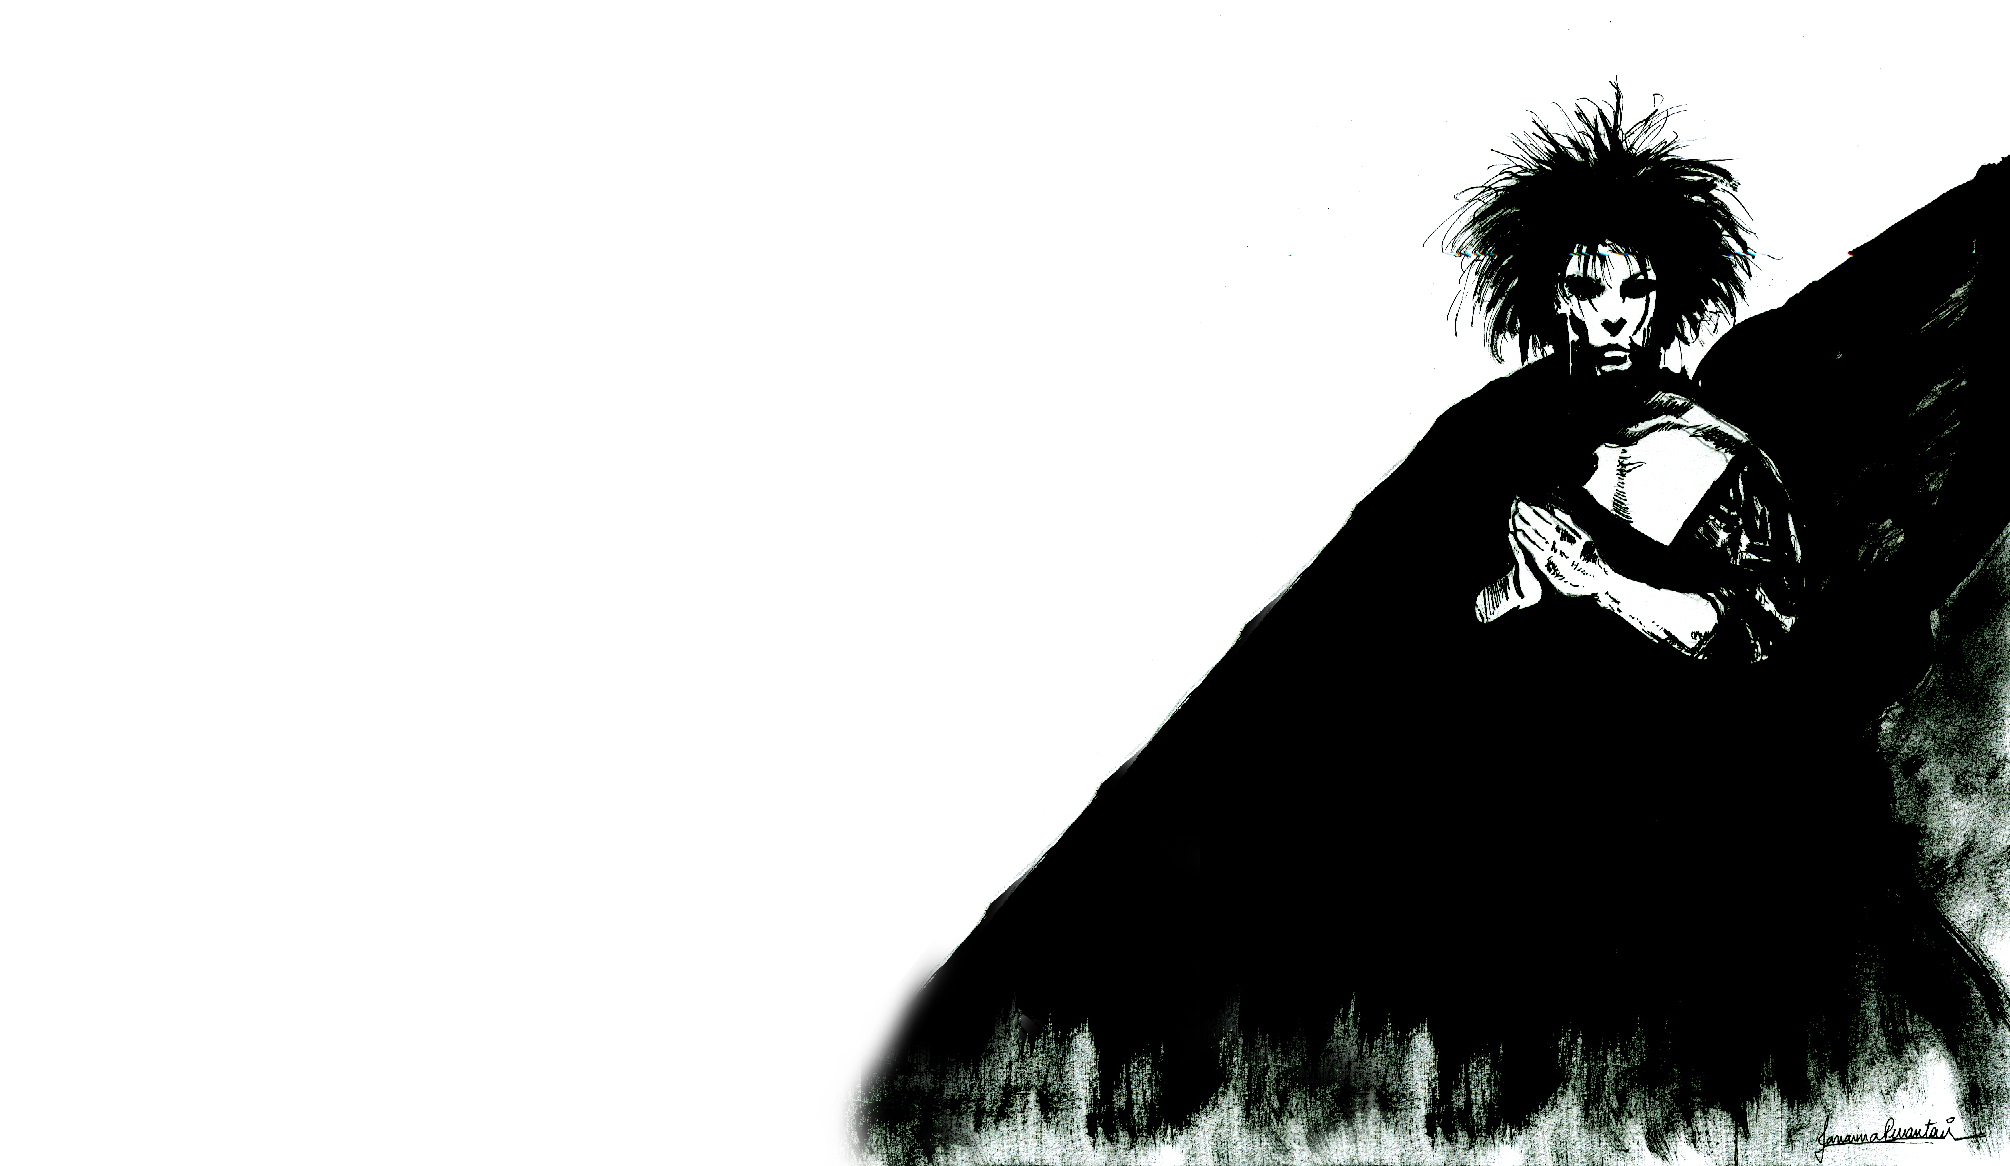 Photo Page: The Sandman Full HD Wallpaper And Background Image